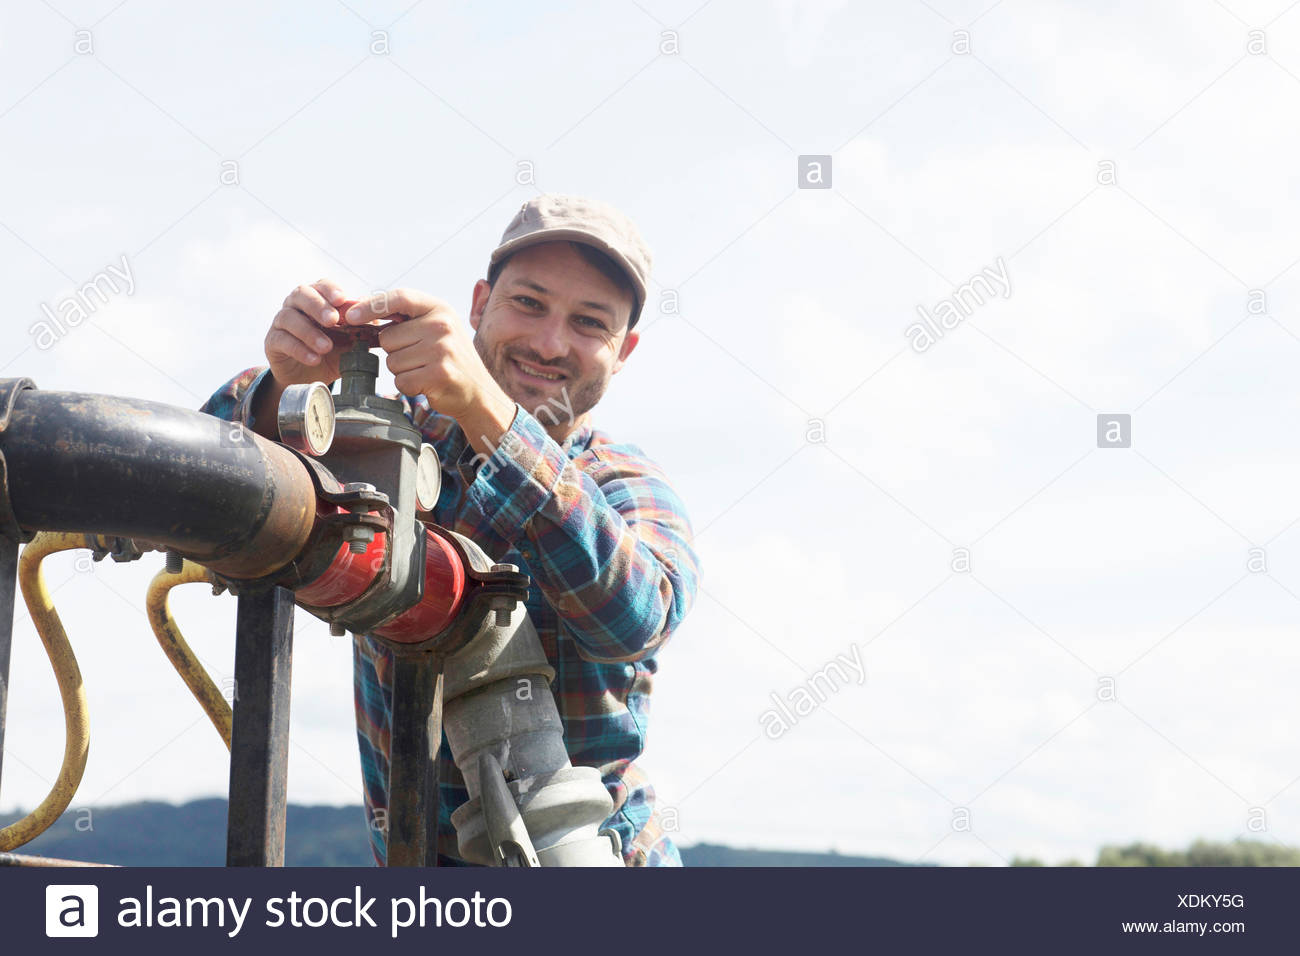 Man opening valve on industrial piping, looking at camera smiling - Stock Image